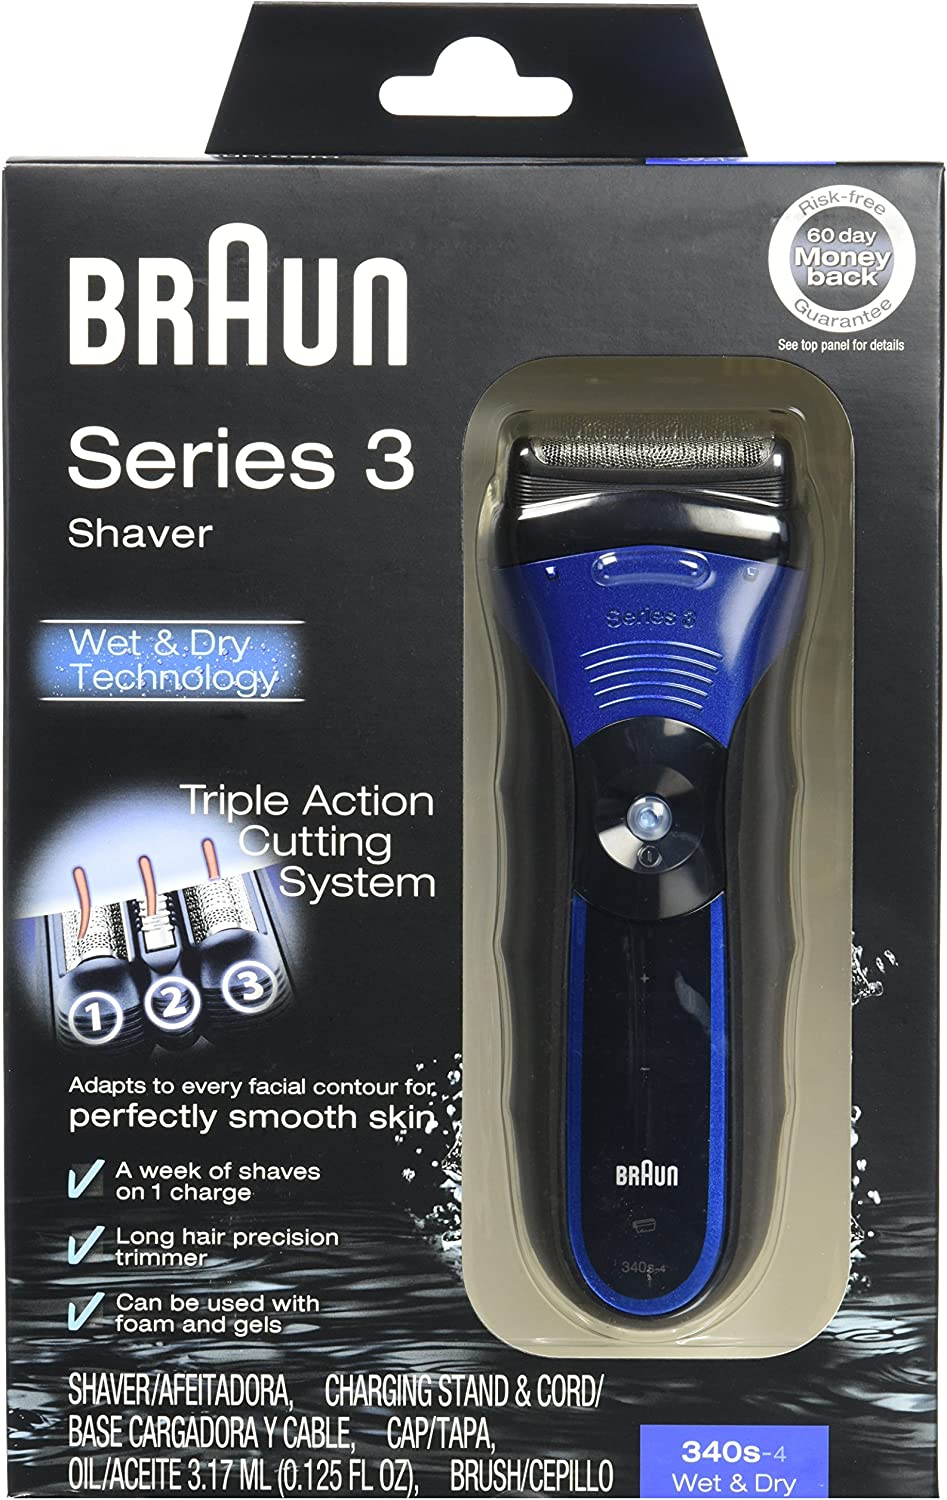 Braun 3series 340S-4 Wet & Dry Shaver: Amazon.es: Belleza